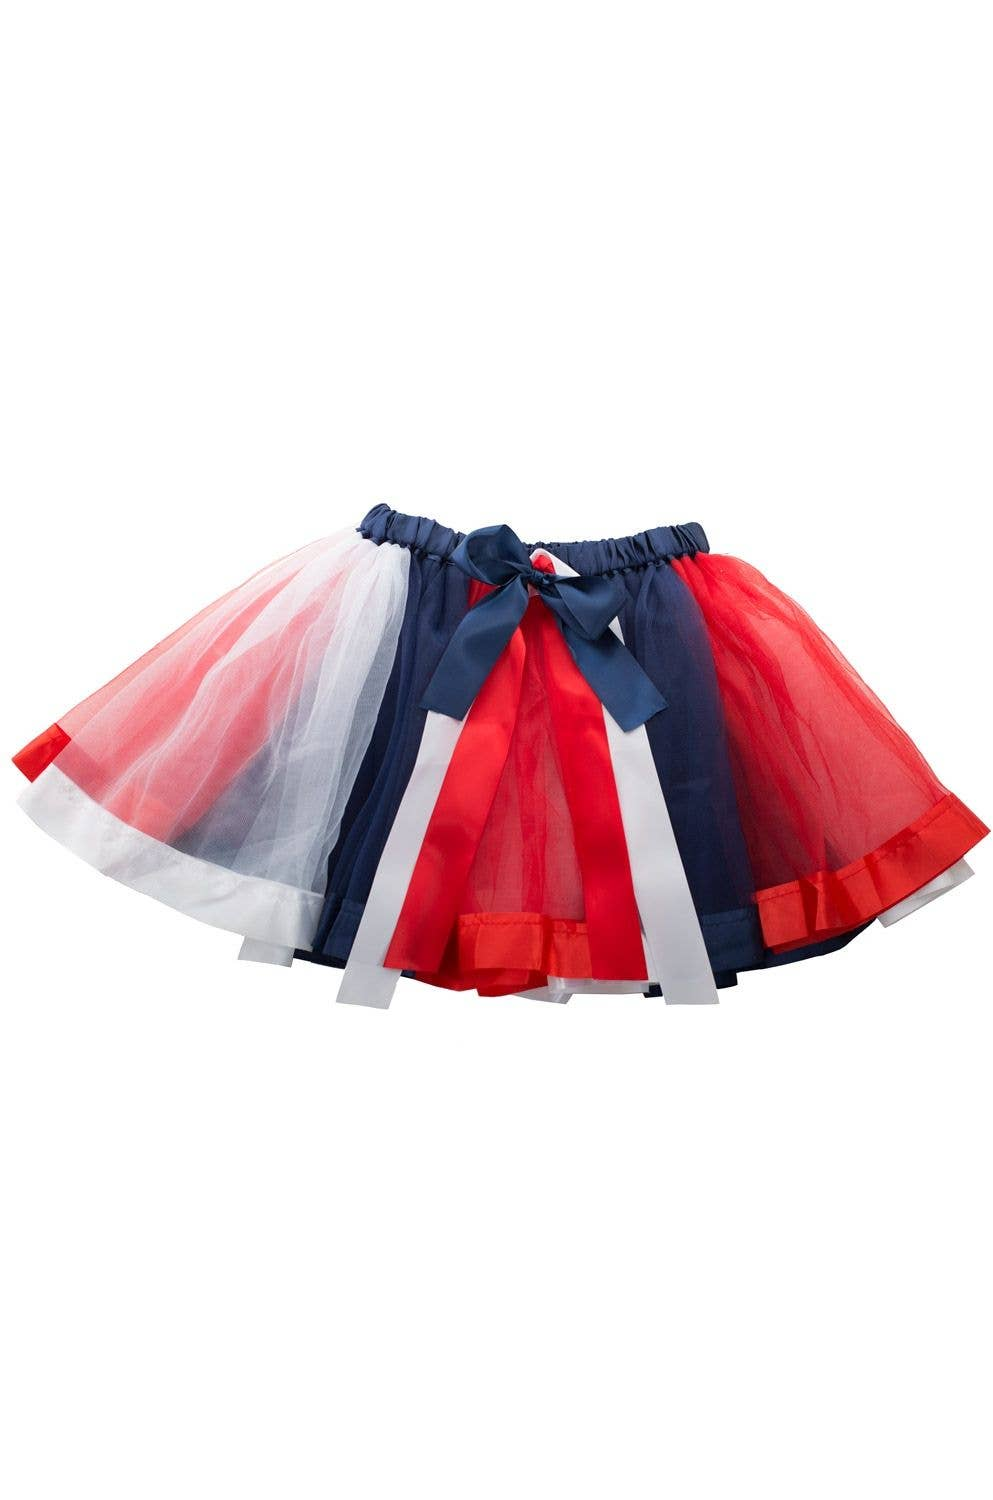 9230825c75 Adult's Australia Day Red, White And Blue Tulle And Satin Trim Petticoat  Tutu